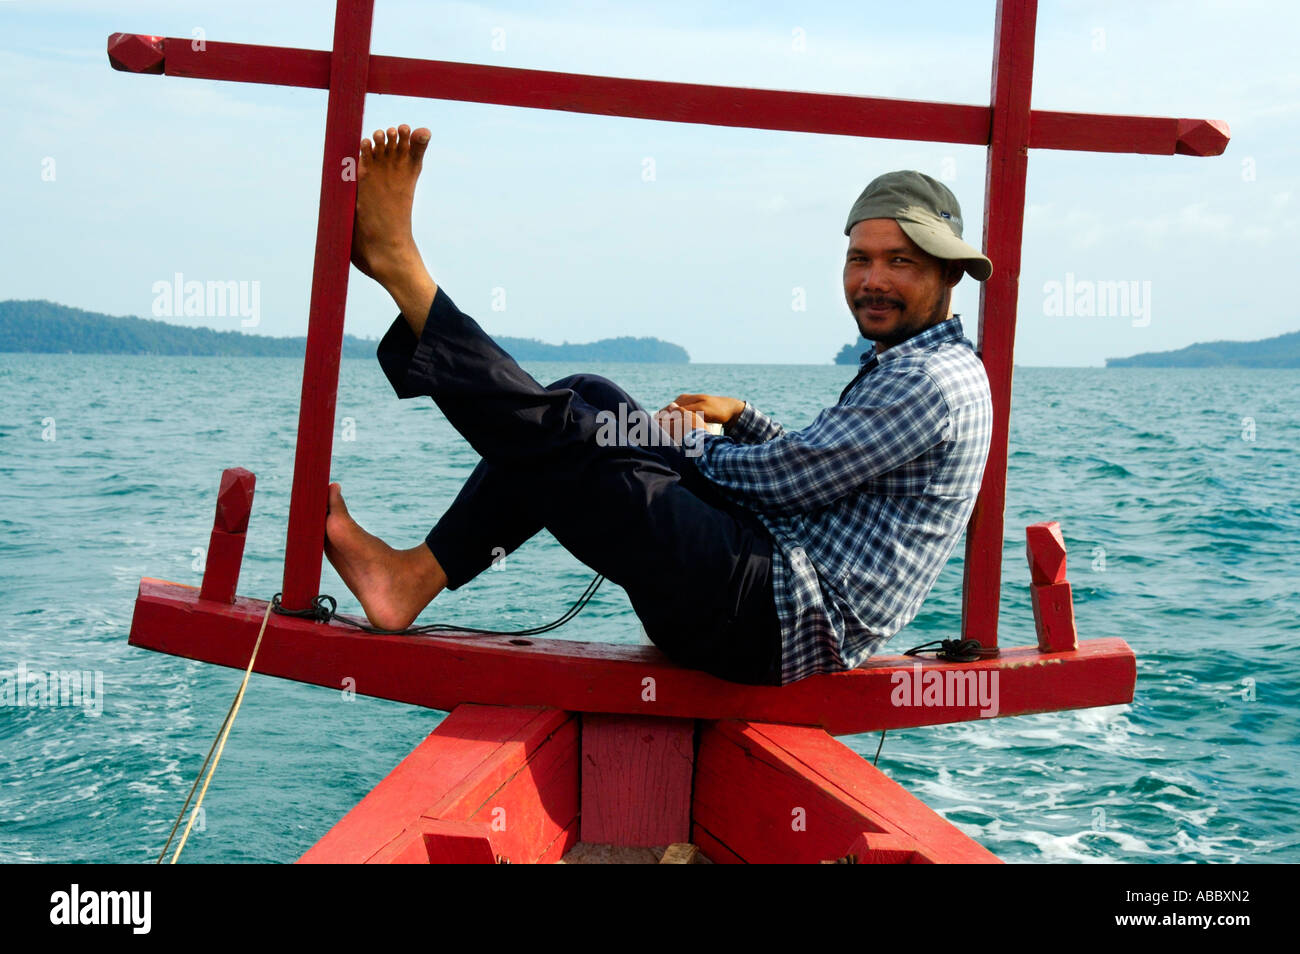 Khmer boatman captain squats in the stern of his fisher boat near Sihanoukville Kompong Som Cambodia - Stock Image